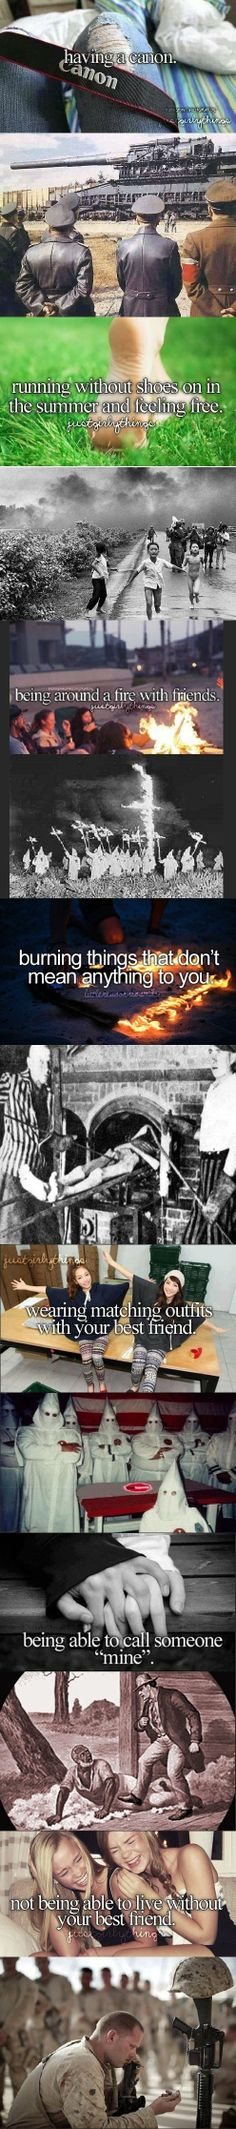 justgirlythings  // funny pictures - funny photos - funny images - funny pics - funny quotes - #lol #humor #funnypictures